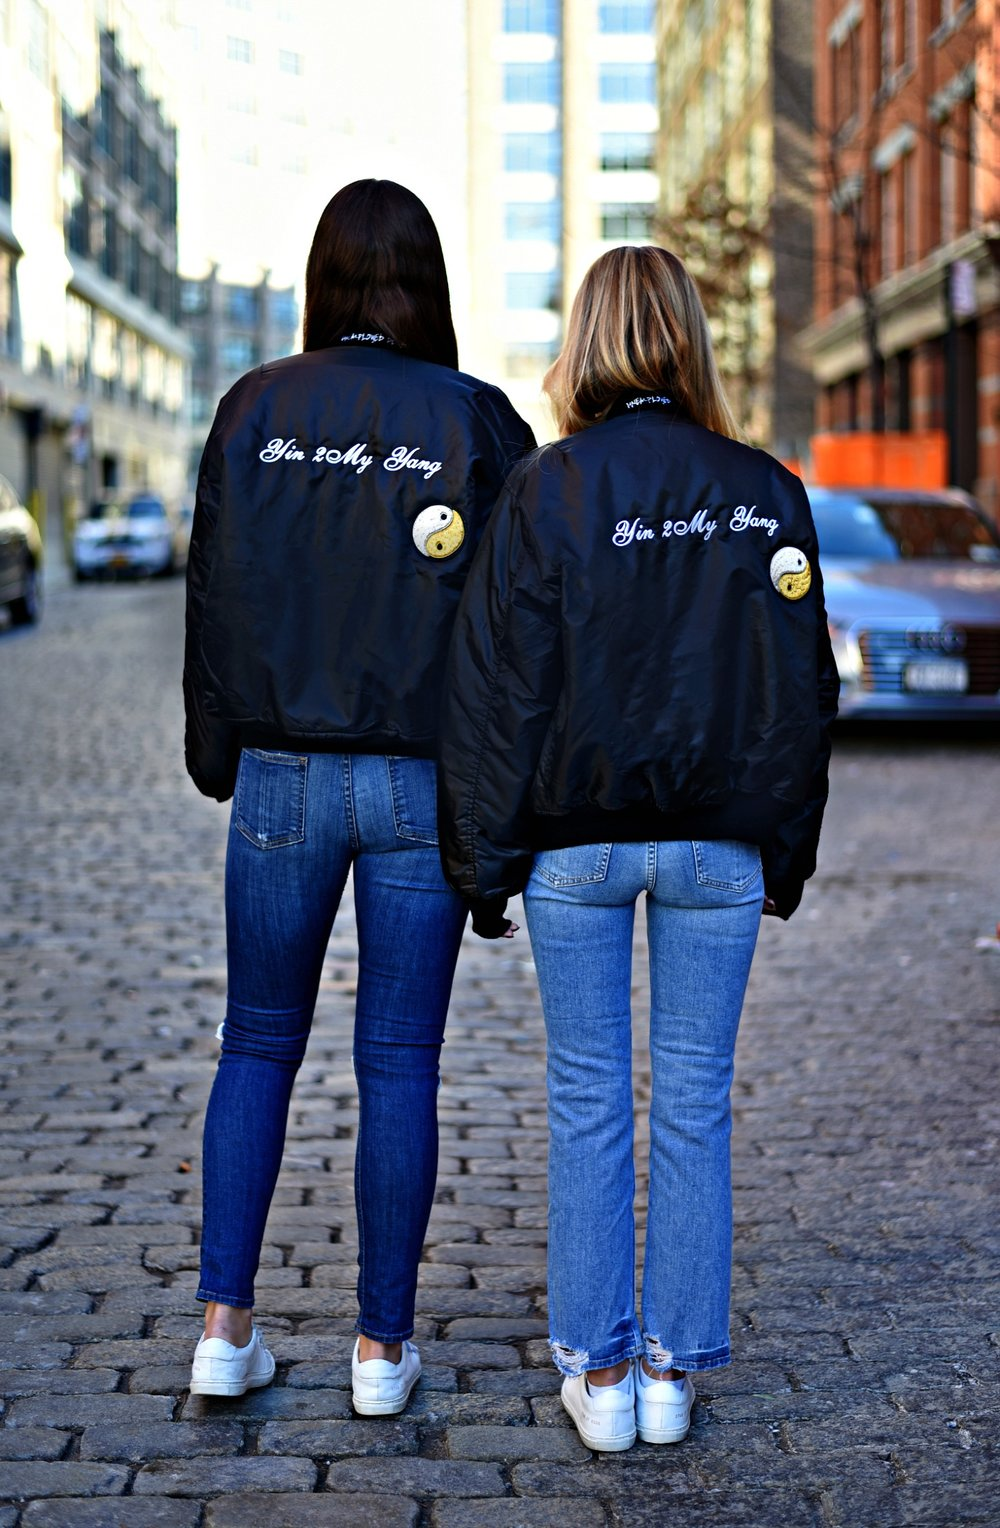 SOPHIE & CHARLOTTE BICKLEY YIN 2MY YANG SISTER FASHION BLOGGERS NYC UNEMPLOYED DENIM POST 5.jpg